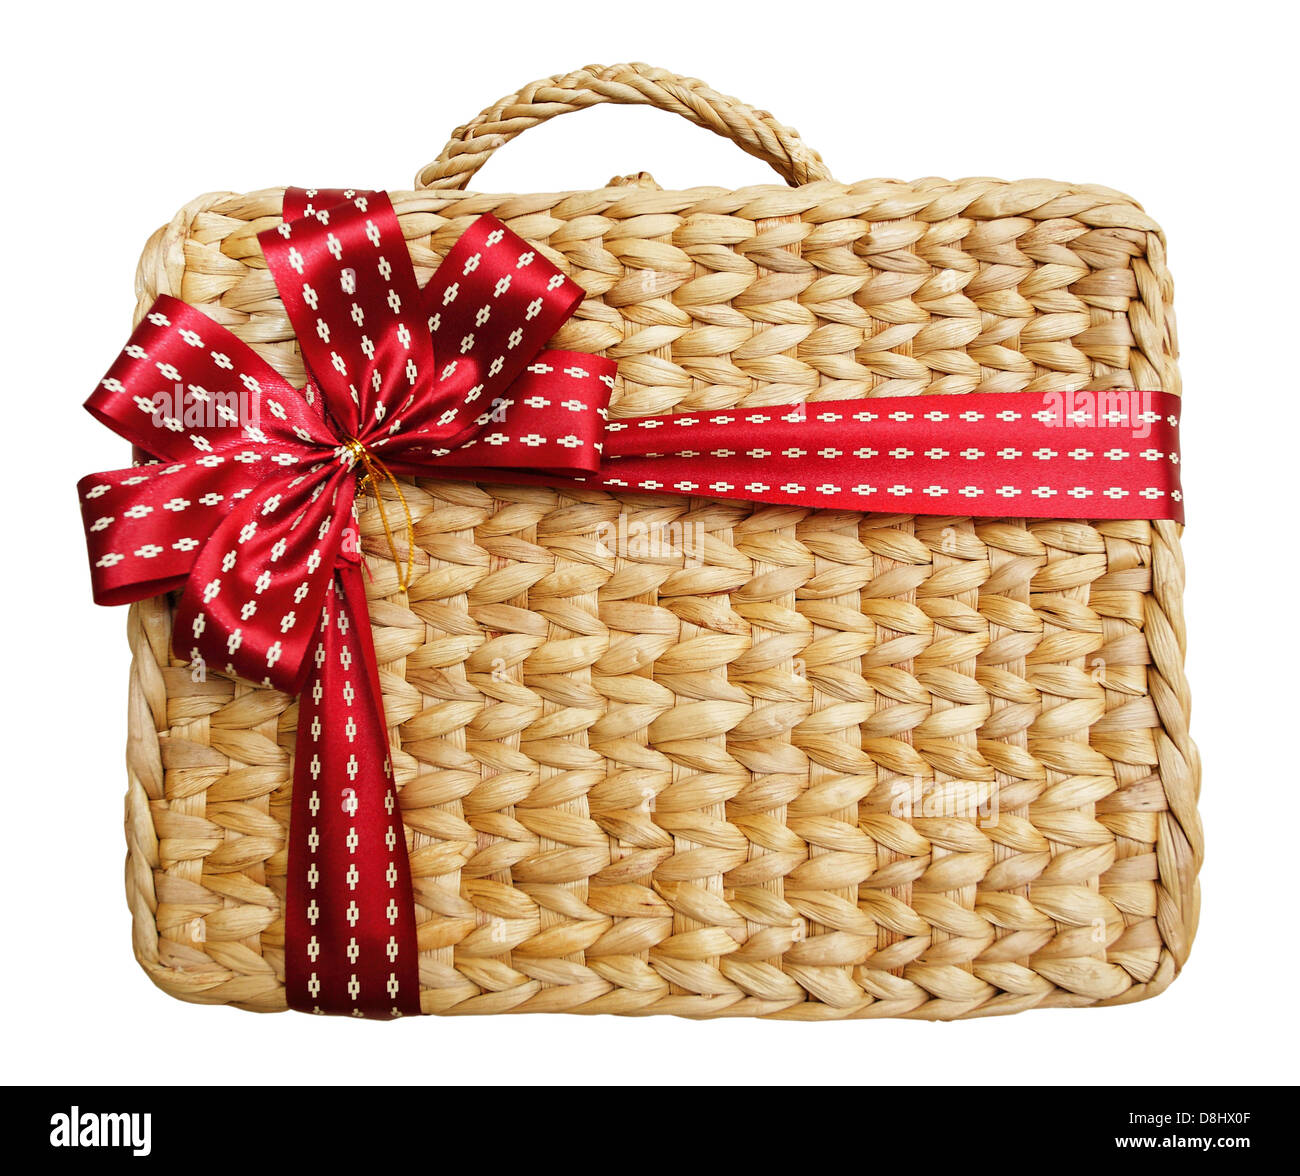 A gift box in a basket on white background - Stock Image